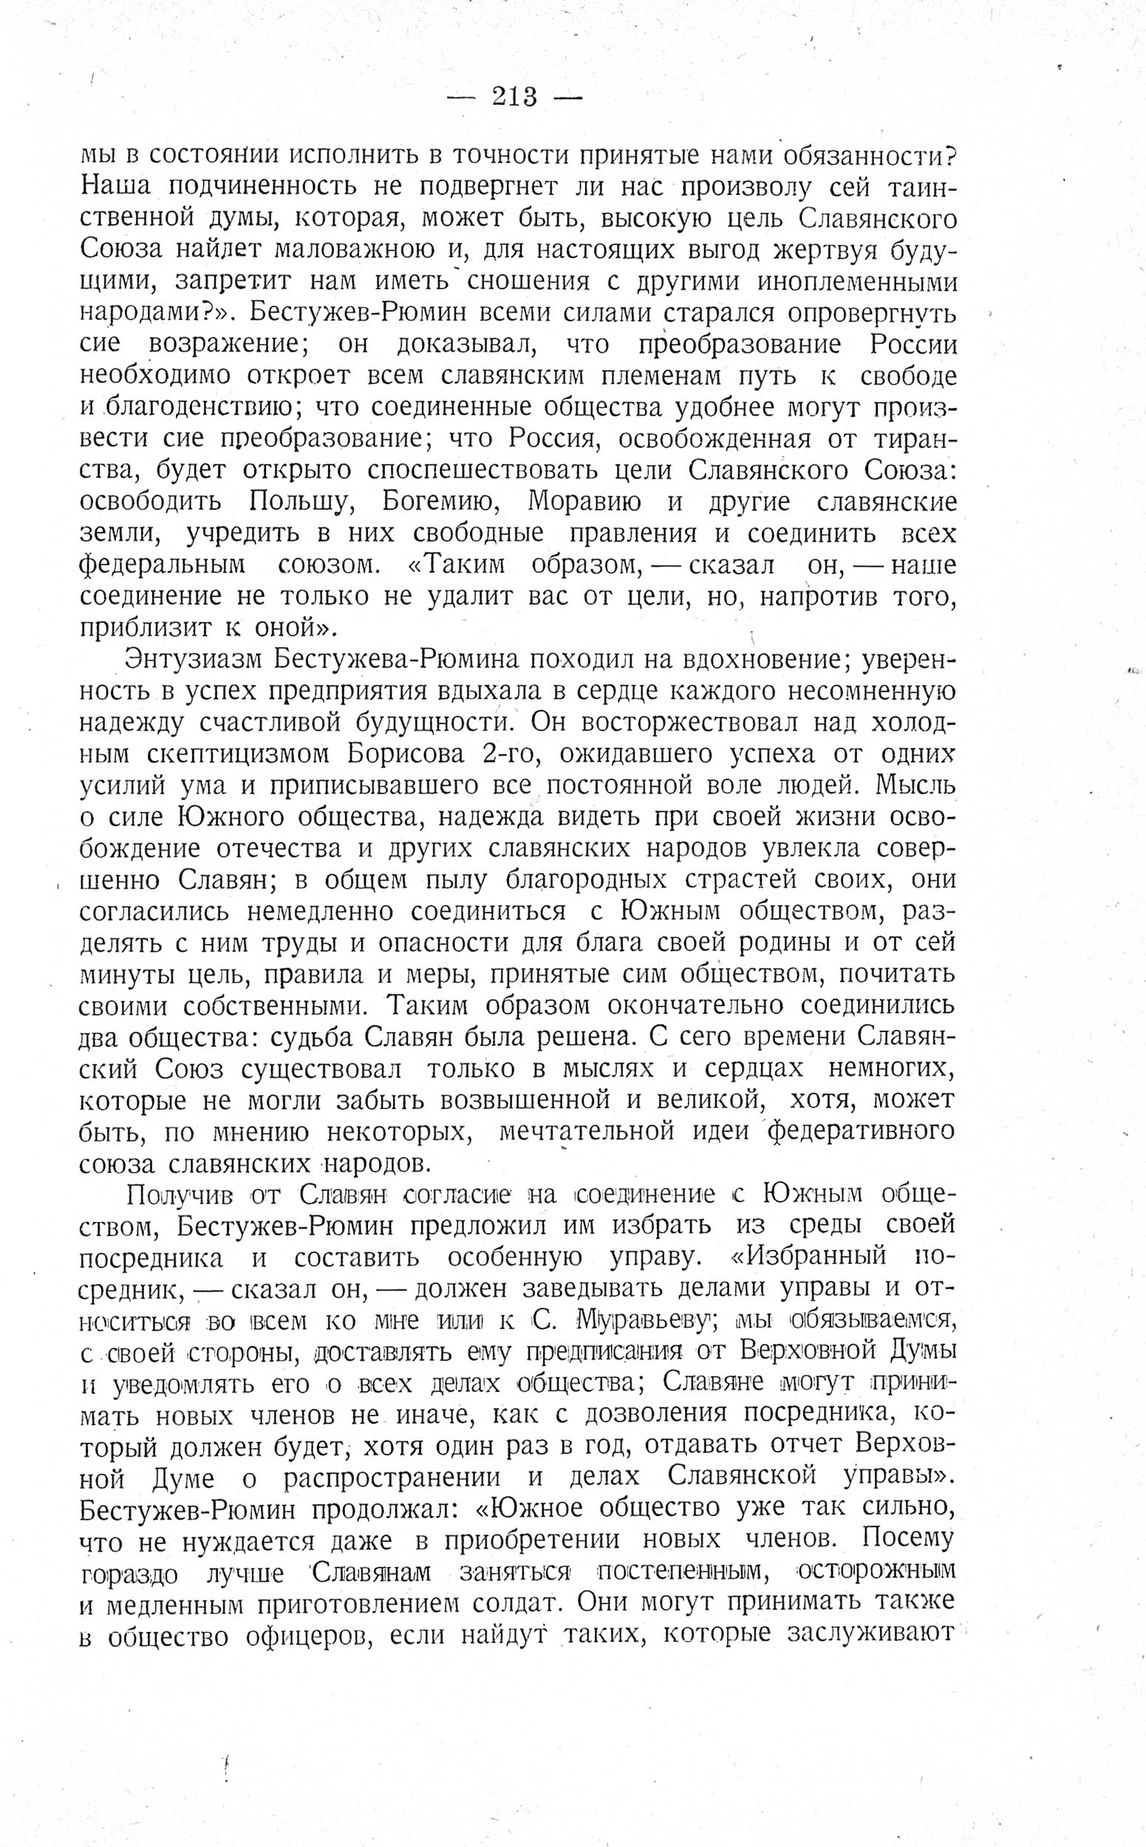 http://elib.shpl.ru/pages/625796/zooms/7